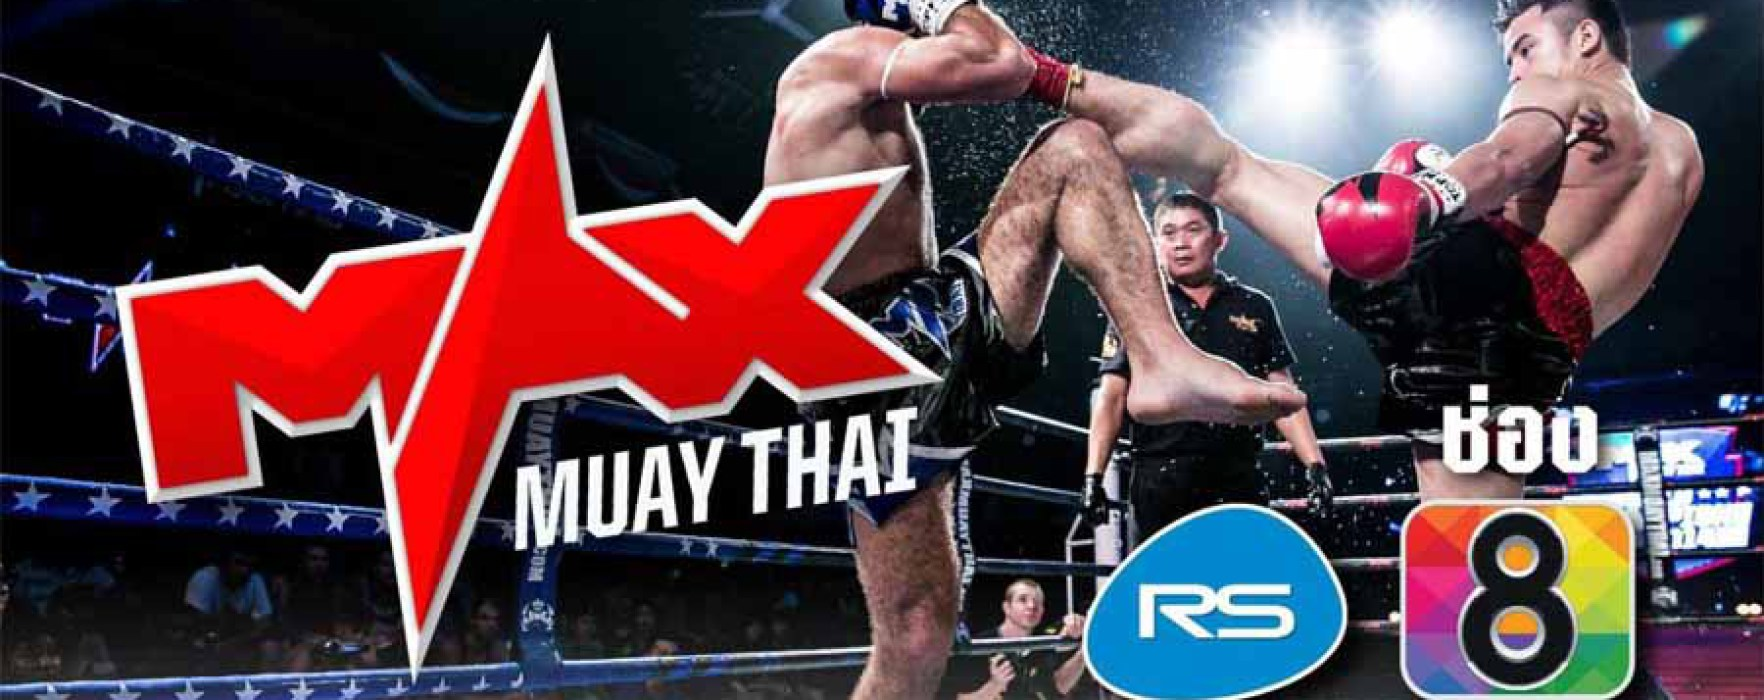 Flash News: Max Muay Thai live aired on Thai Channel 8 from 1st Febraury!